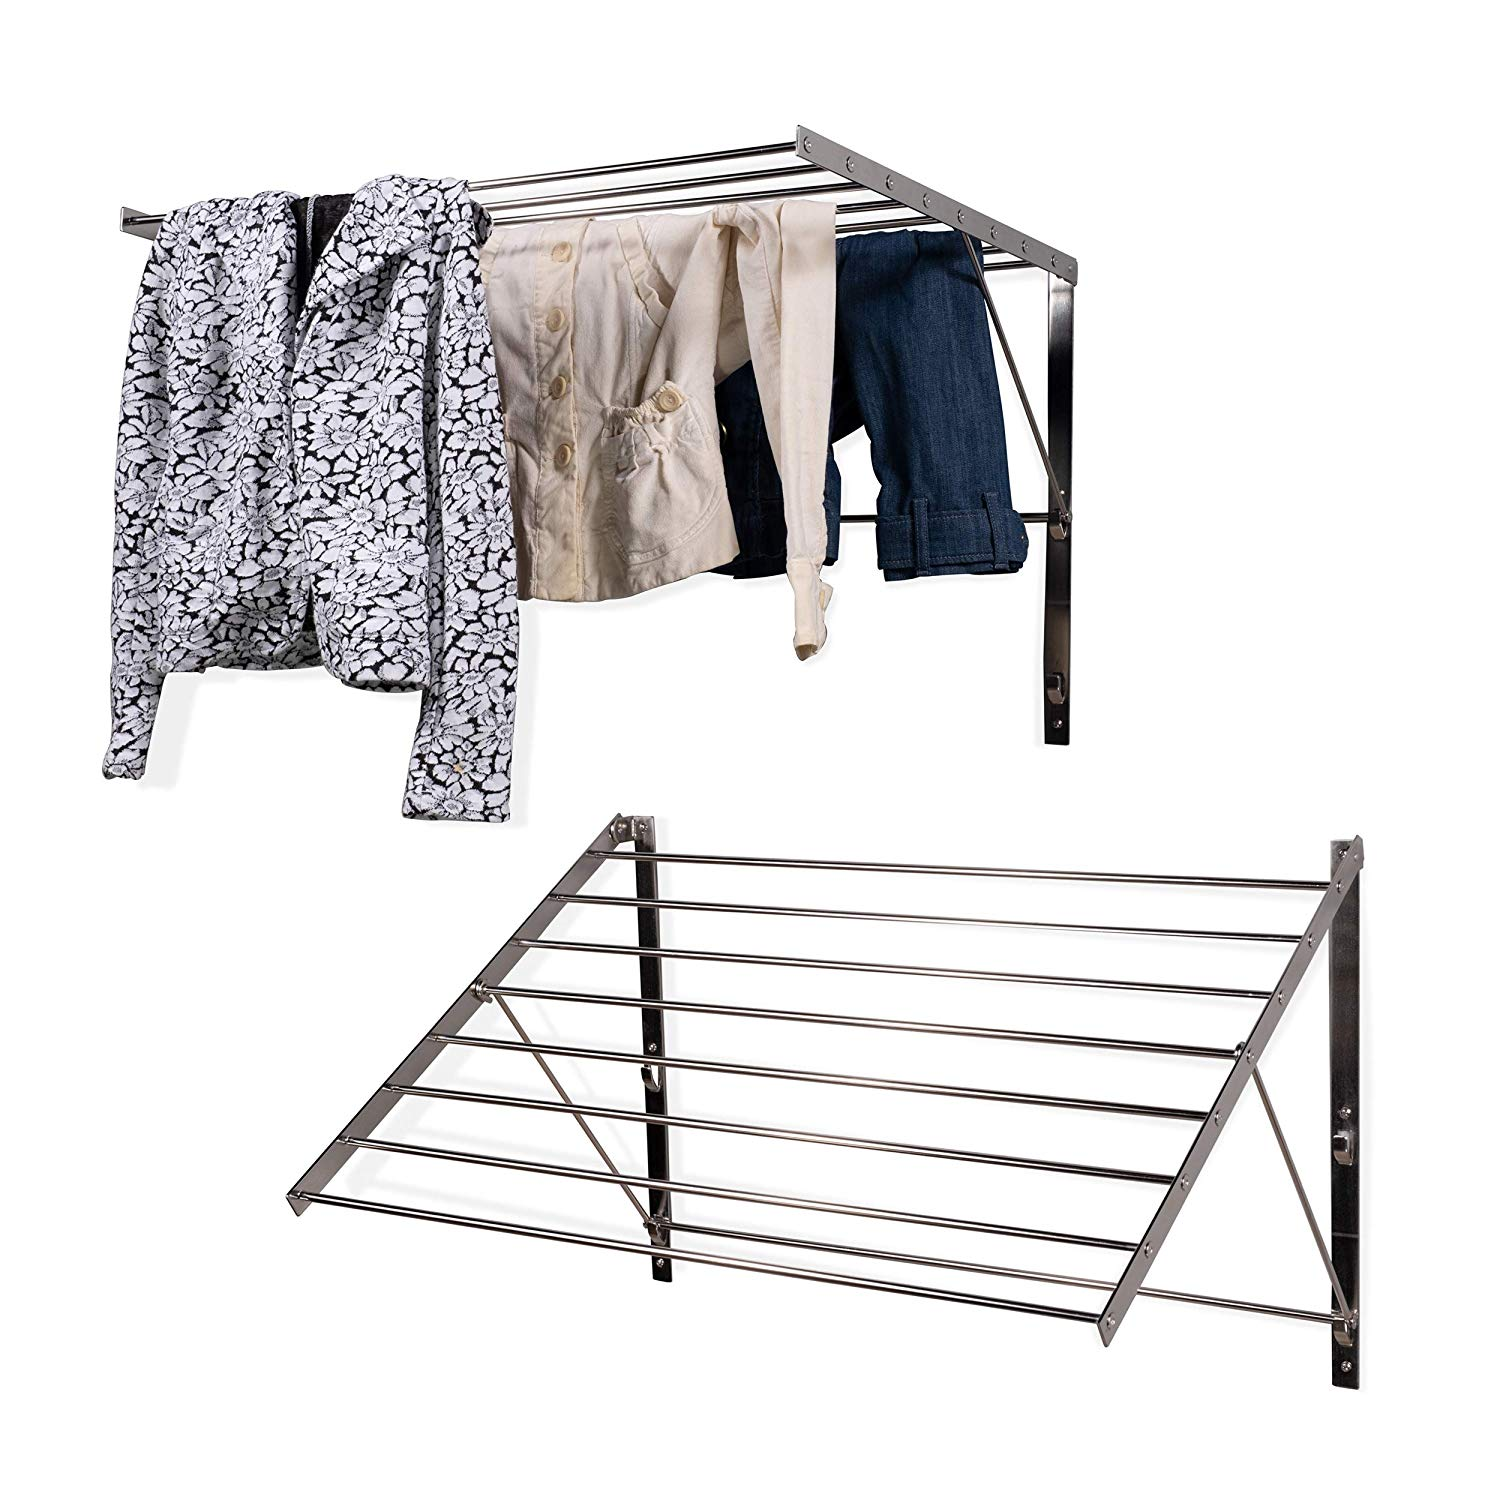 Brightmaison Clothes Drying Rack | Best Cloth Drying Racks